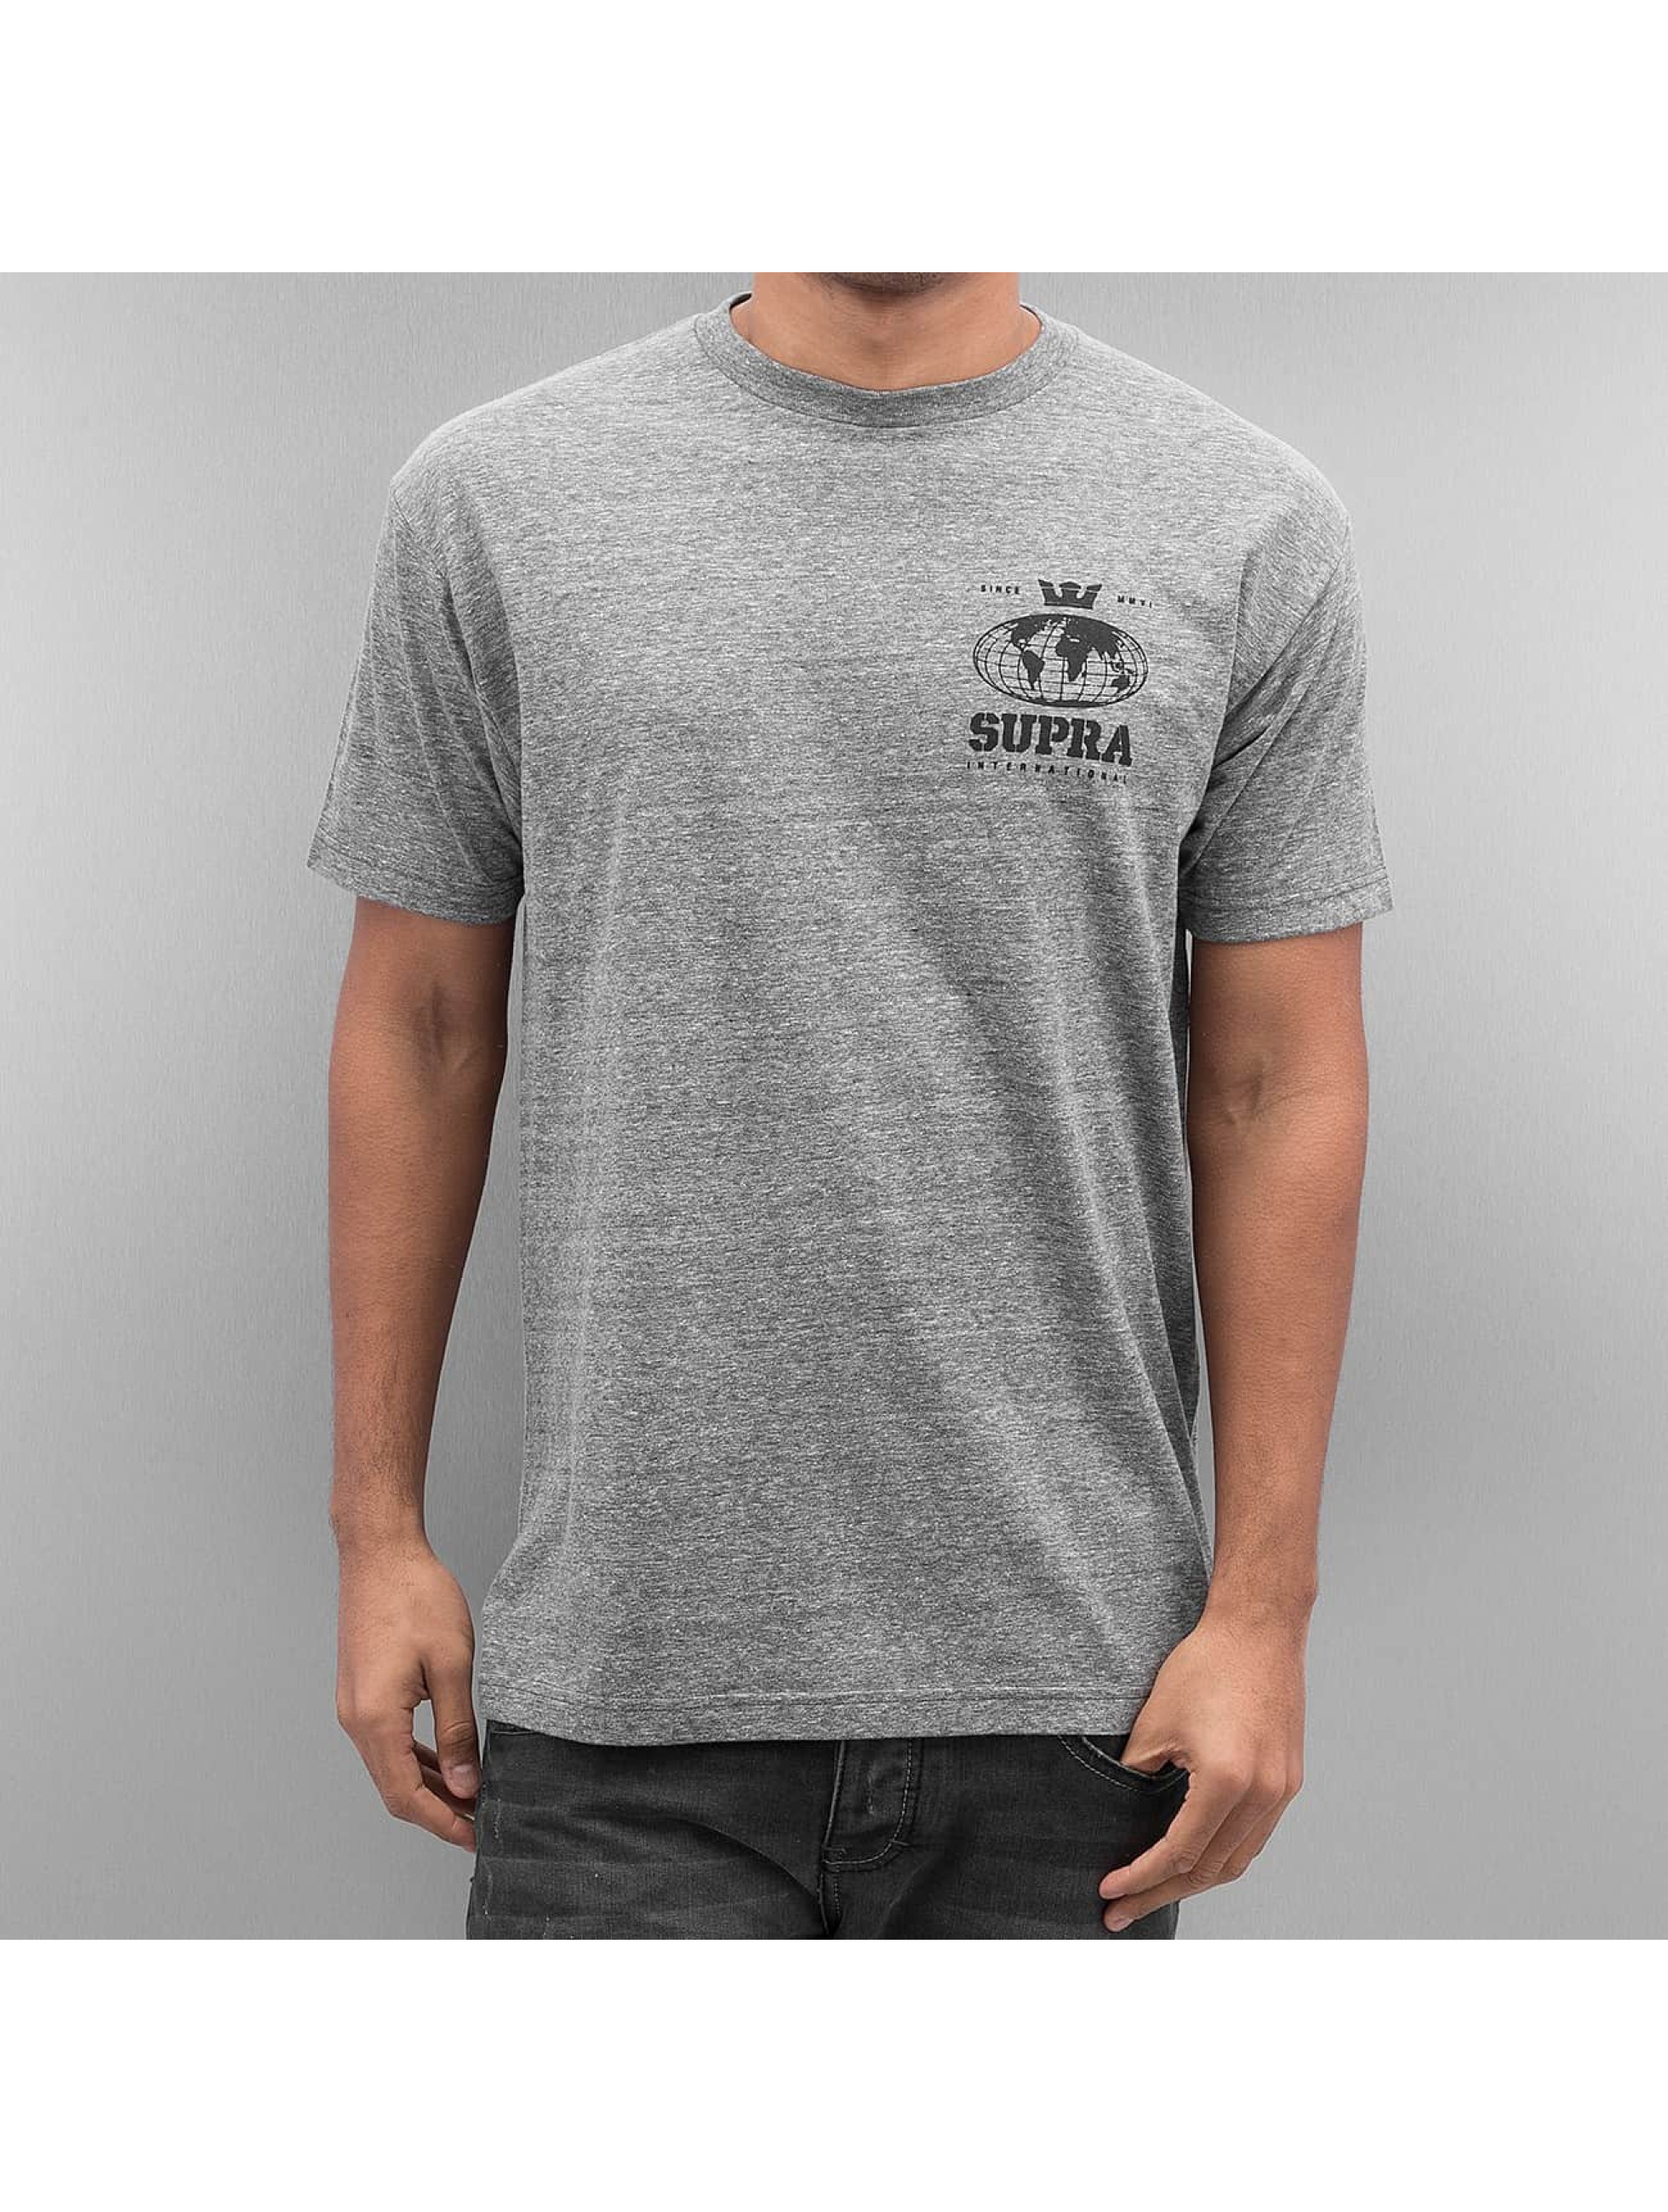 Supra T-Shirt Worldwide Reg grey